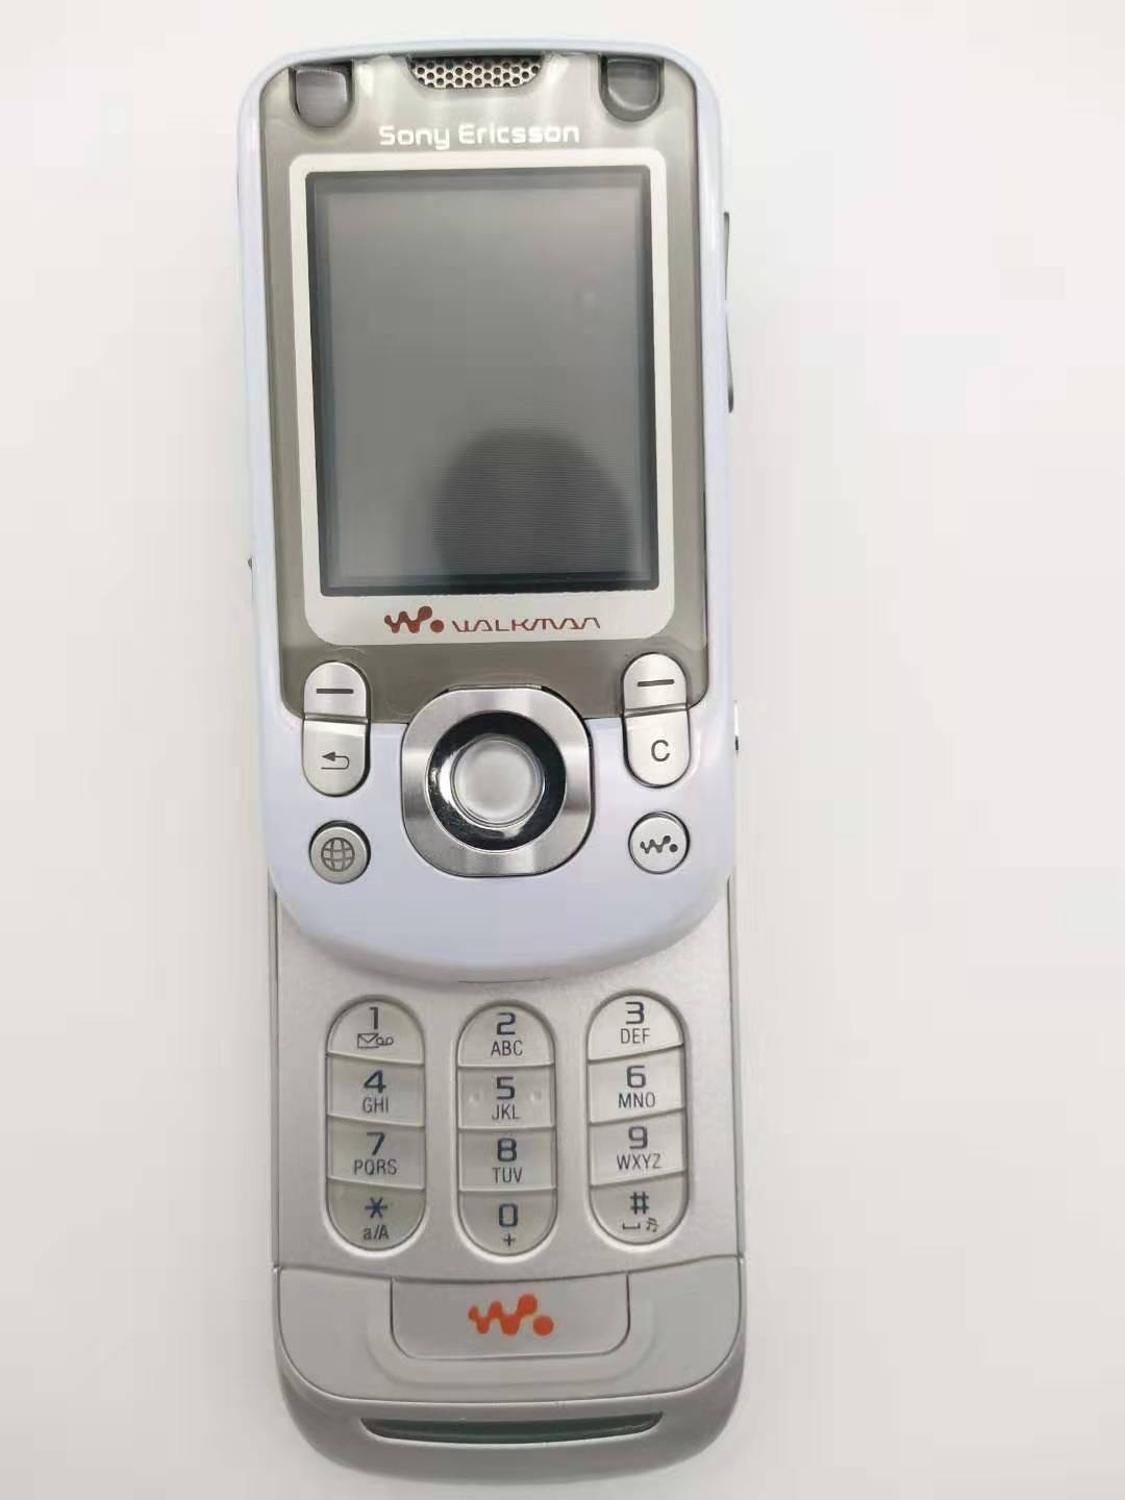 W550 100% Original Unlocked Sony Ericsson W550i Mobile Phone 2G Bluetooth FM Unlocked Cell Phone Free shipping